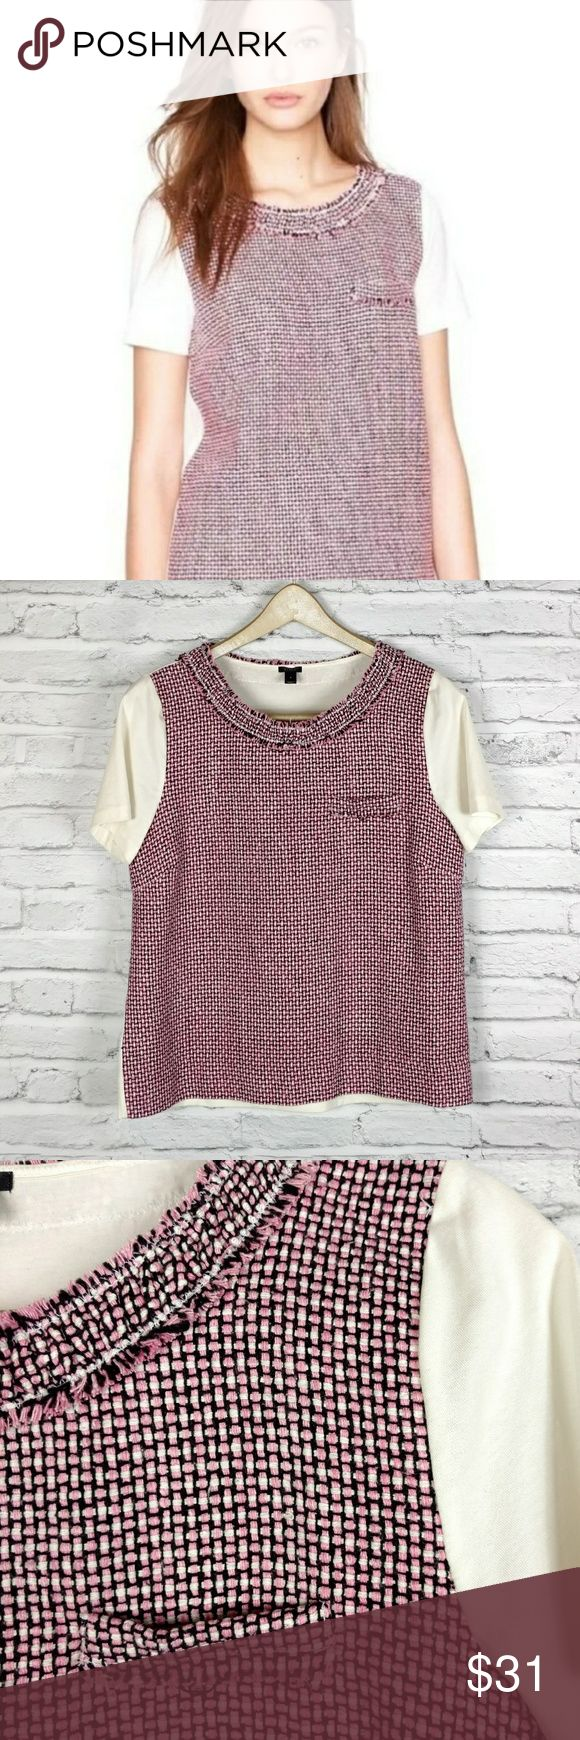 """J Crew pink tweed front t shirt So classic with a twist! Cream sleeves and back. EUC. Chest 18""""/ Length 22"""" J. Crew Tops"""